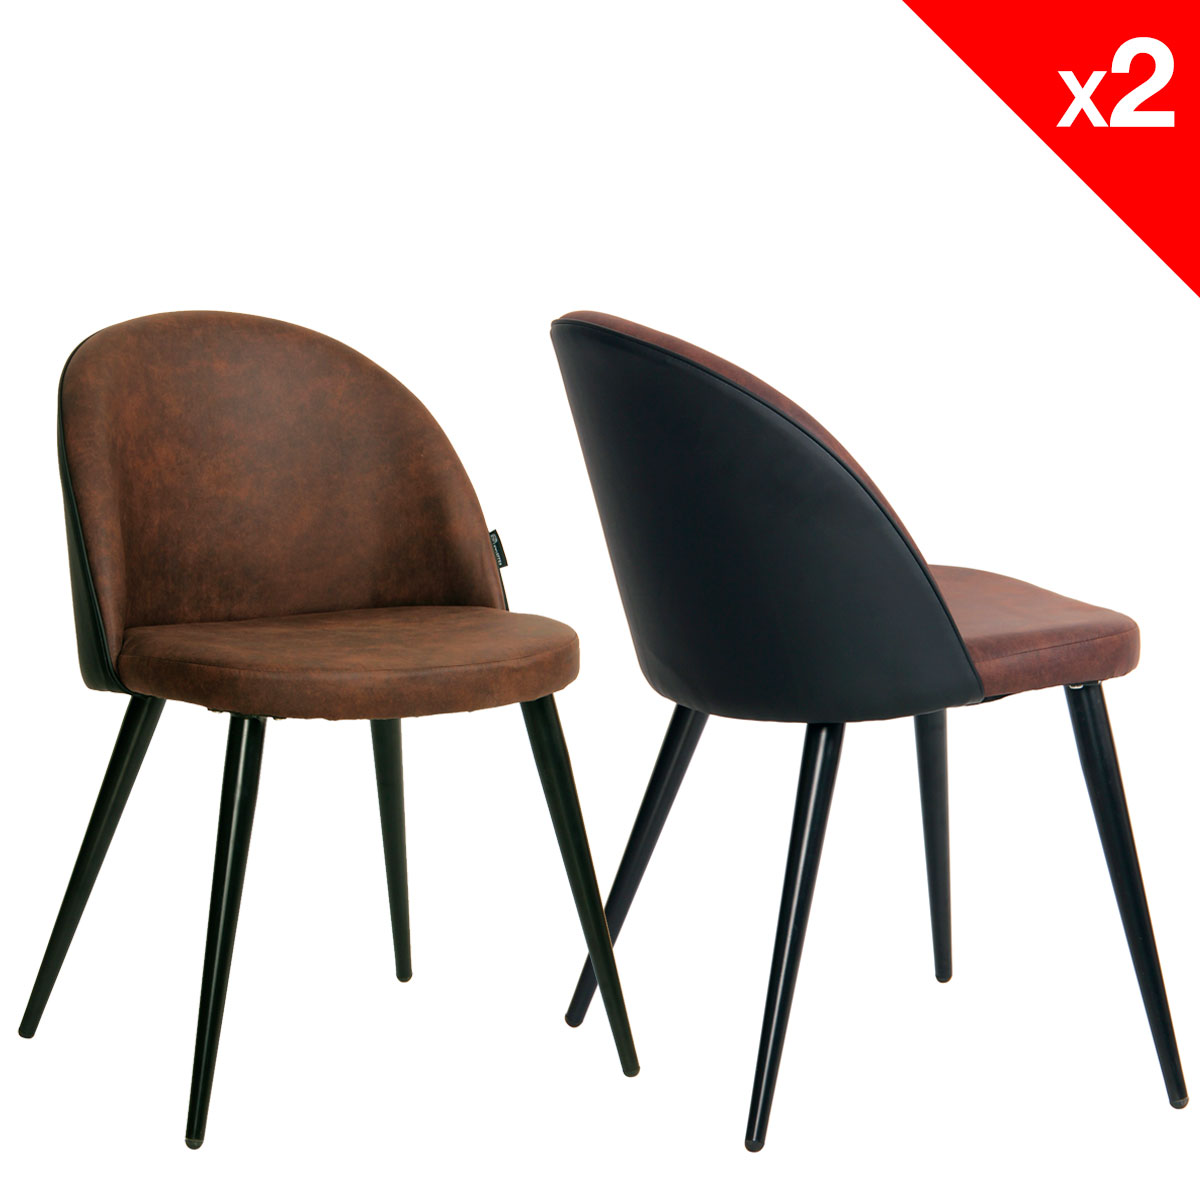 chaise vintage m tal et microfibre lot de 2 giza. Black Bedroom Furniture Sets. Home Design Ideas